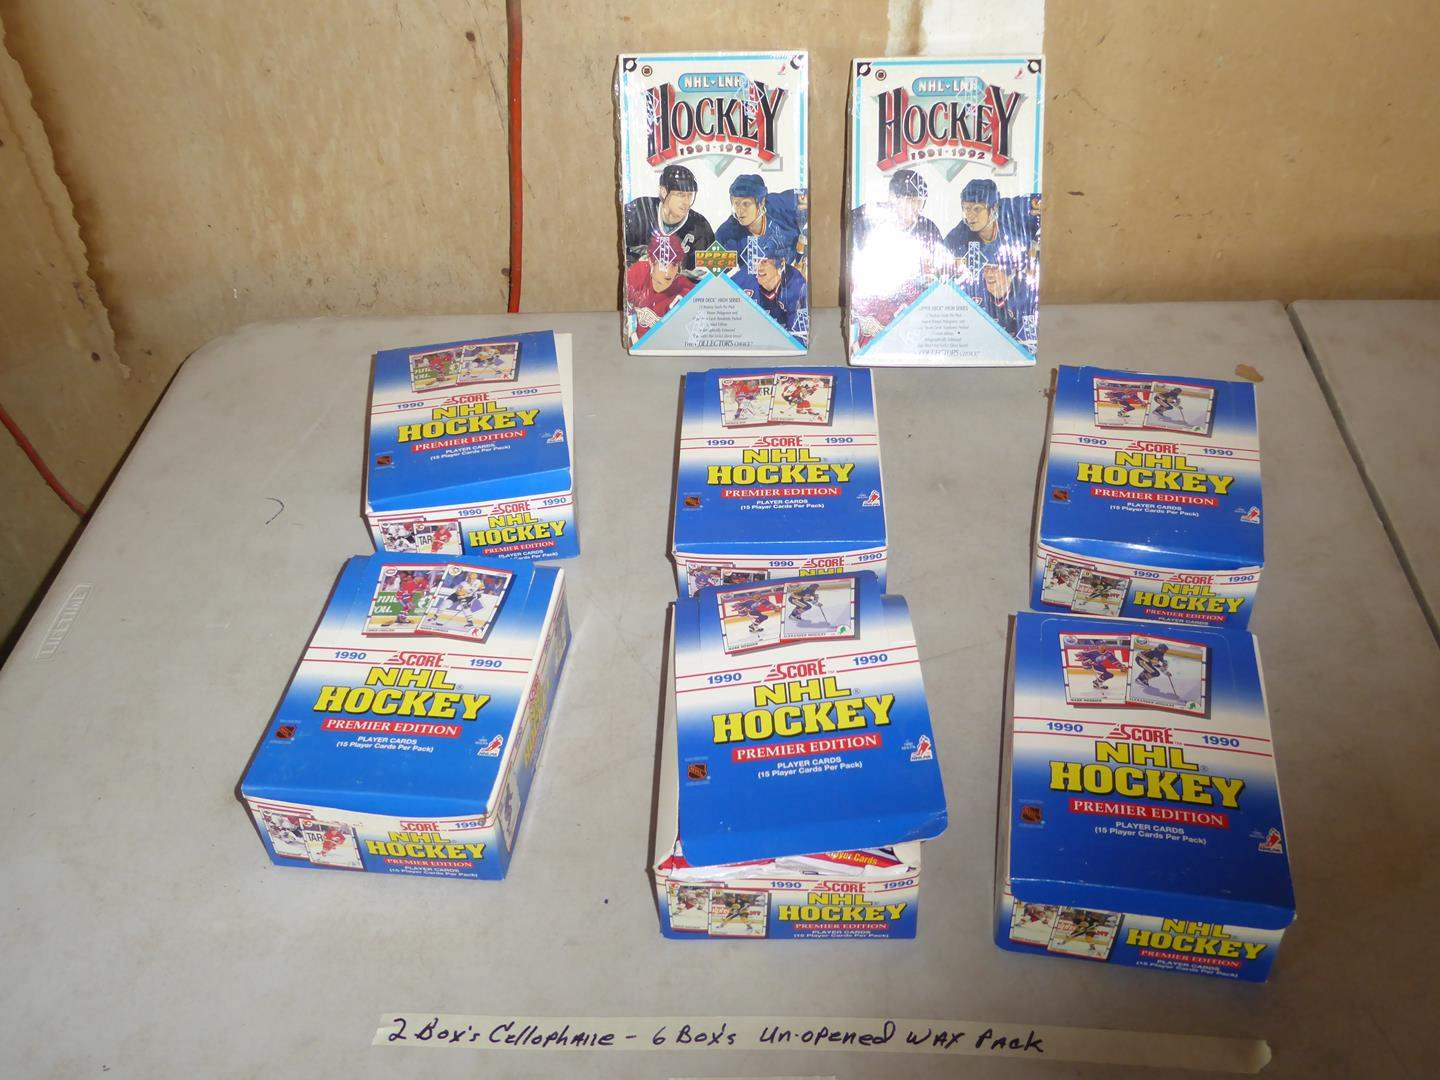 Lot # 422 - 8 Boxes Hockey Cards 1990 -1992 (2 Boxes Cellophane Wrapped & 6 Boxes Unopened Wax Packs) (main image)